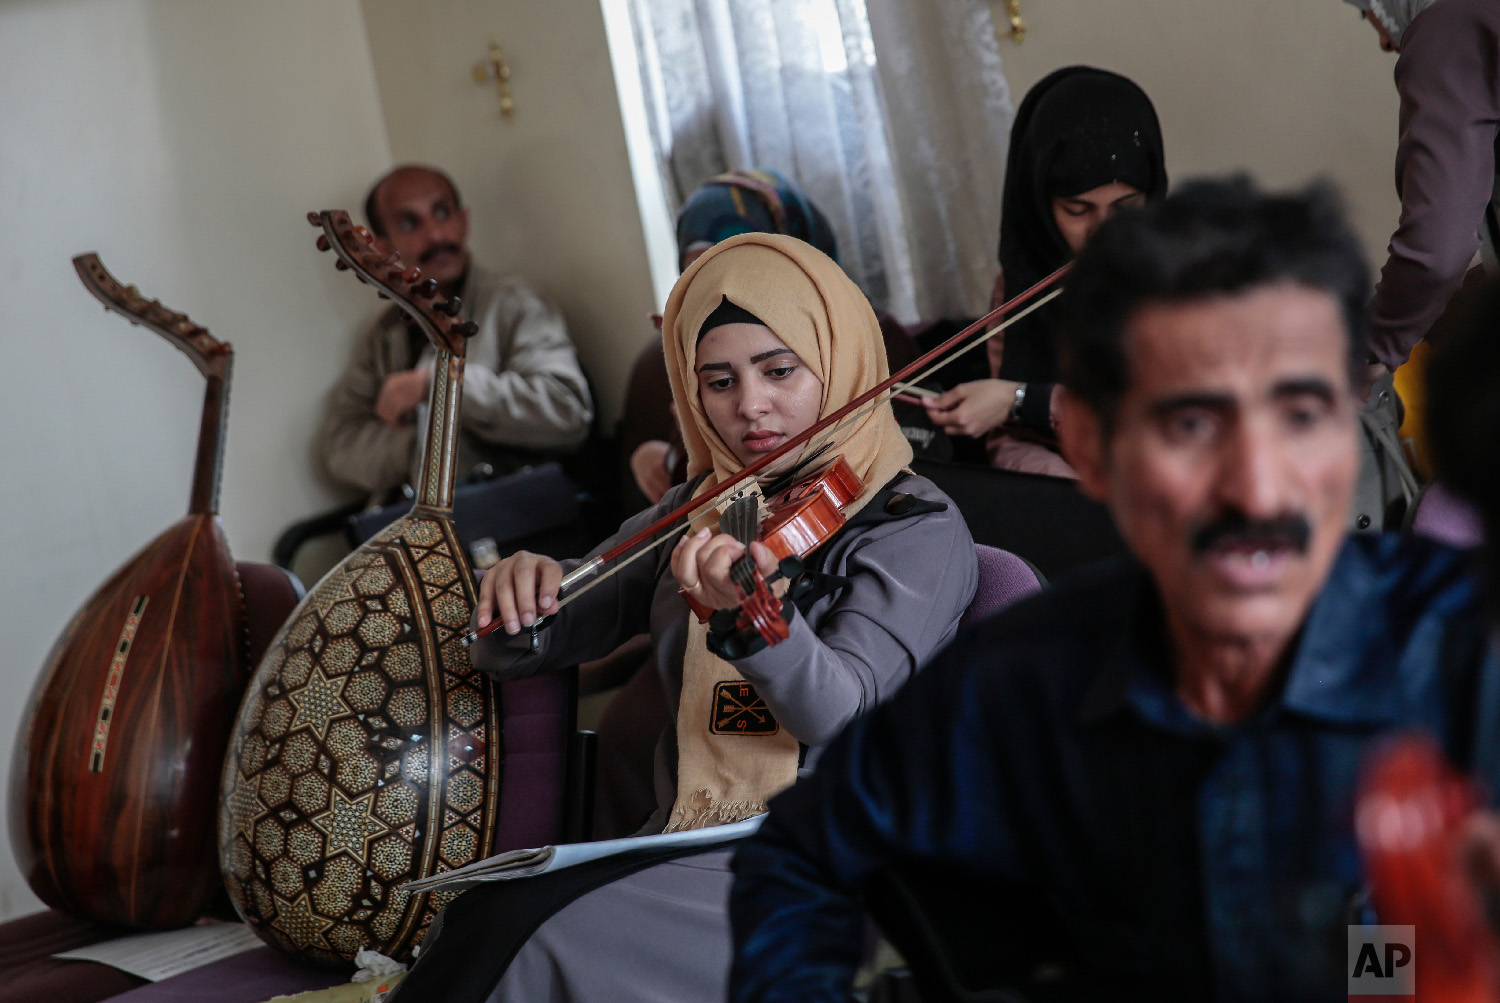 A female Yemeni music student plays the violin during a music class at the Cultural Centre in Sanaa, Yemen on Sunday, April 8, 2018.(AP Photo/Hani Mohammed)